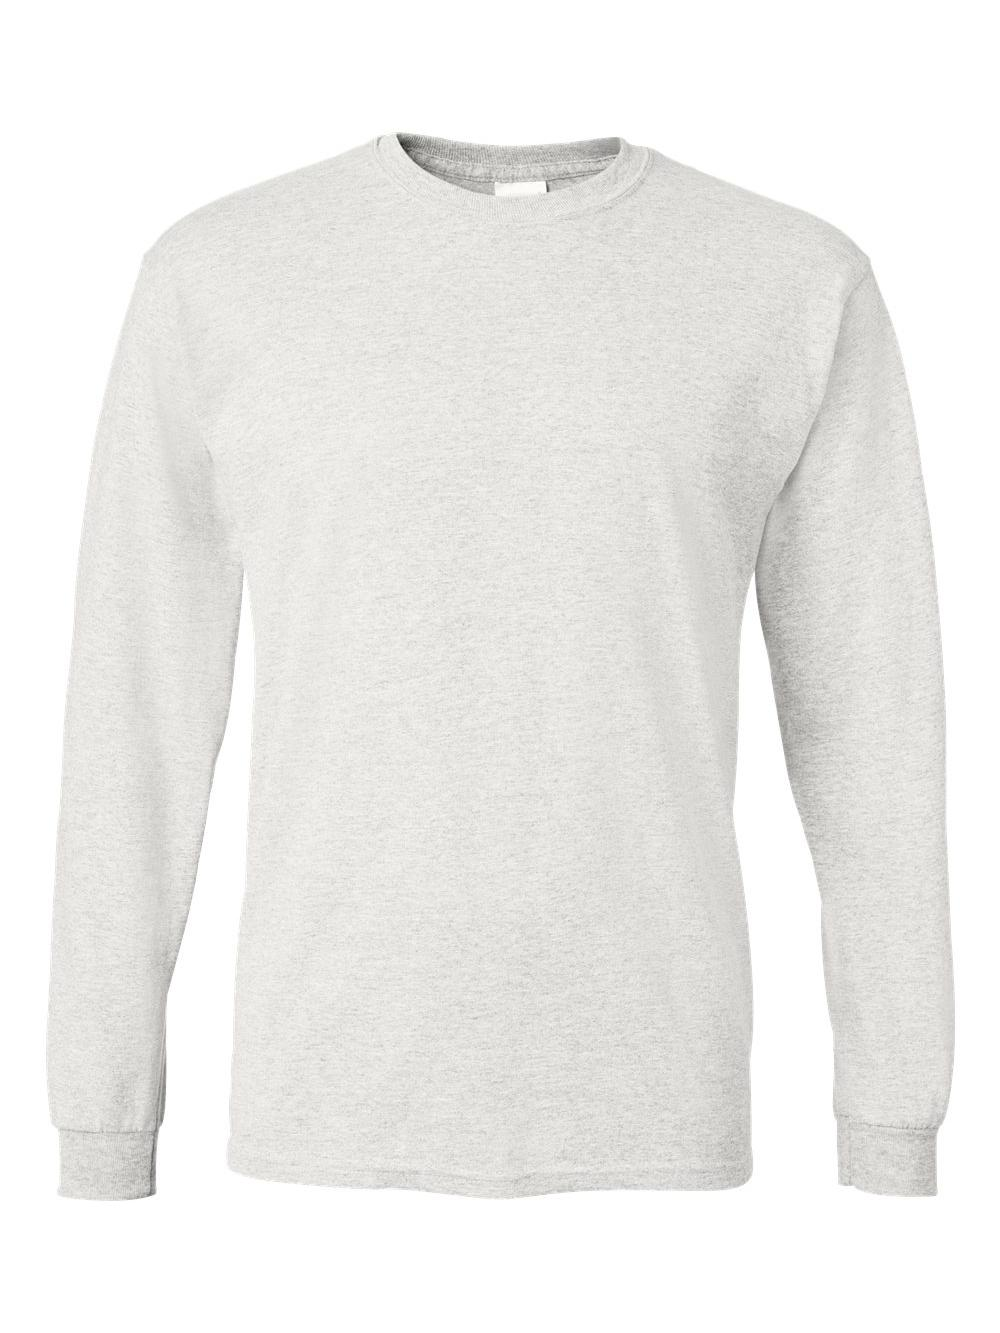 Gildan-DryBlend-50-50-Long-Sleeve-T-Shirt-8400 thumbnail 3